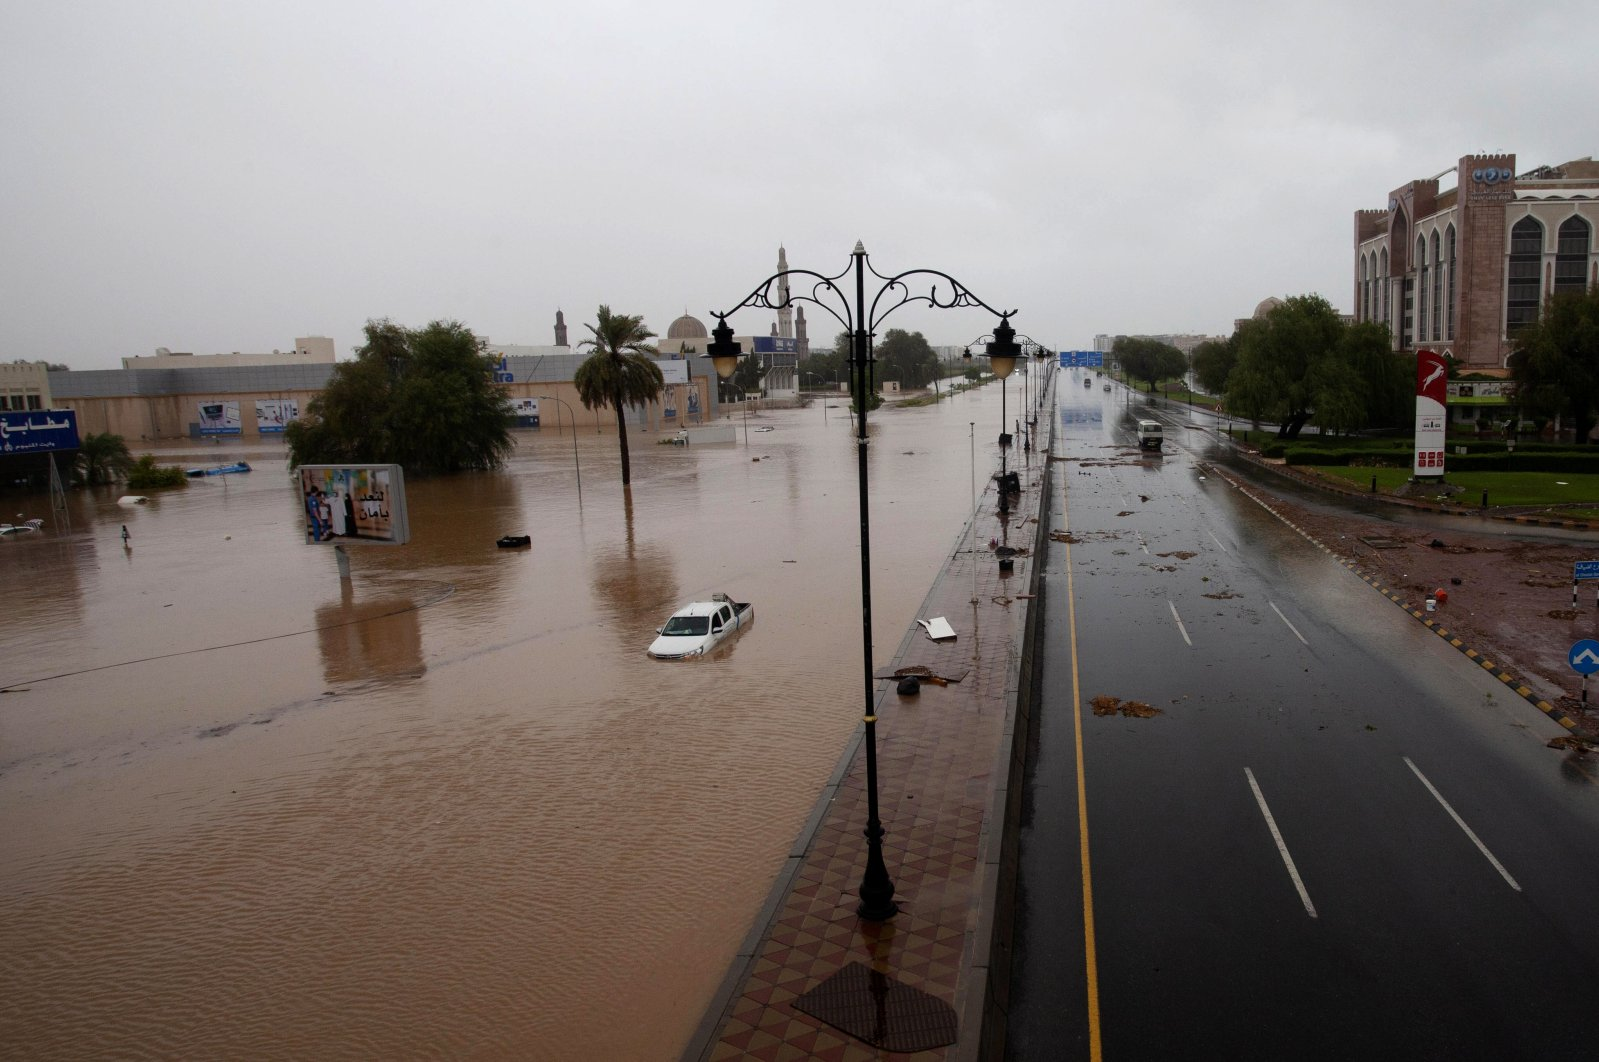 Cars are seen in flooded streets after Cyclone Shaheen hits the capital Muscat in Oman, Oct. 3, 2021. (EPA-EFE Photo)